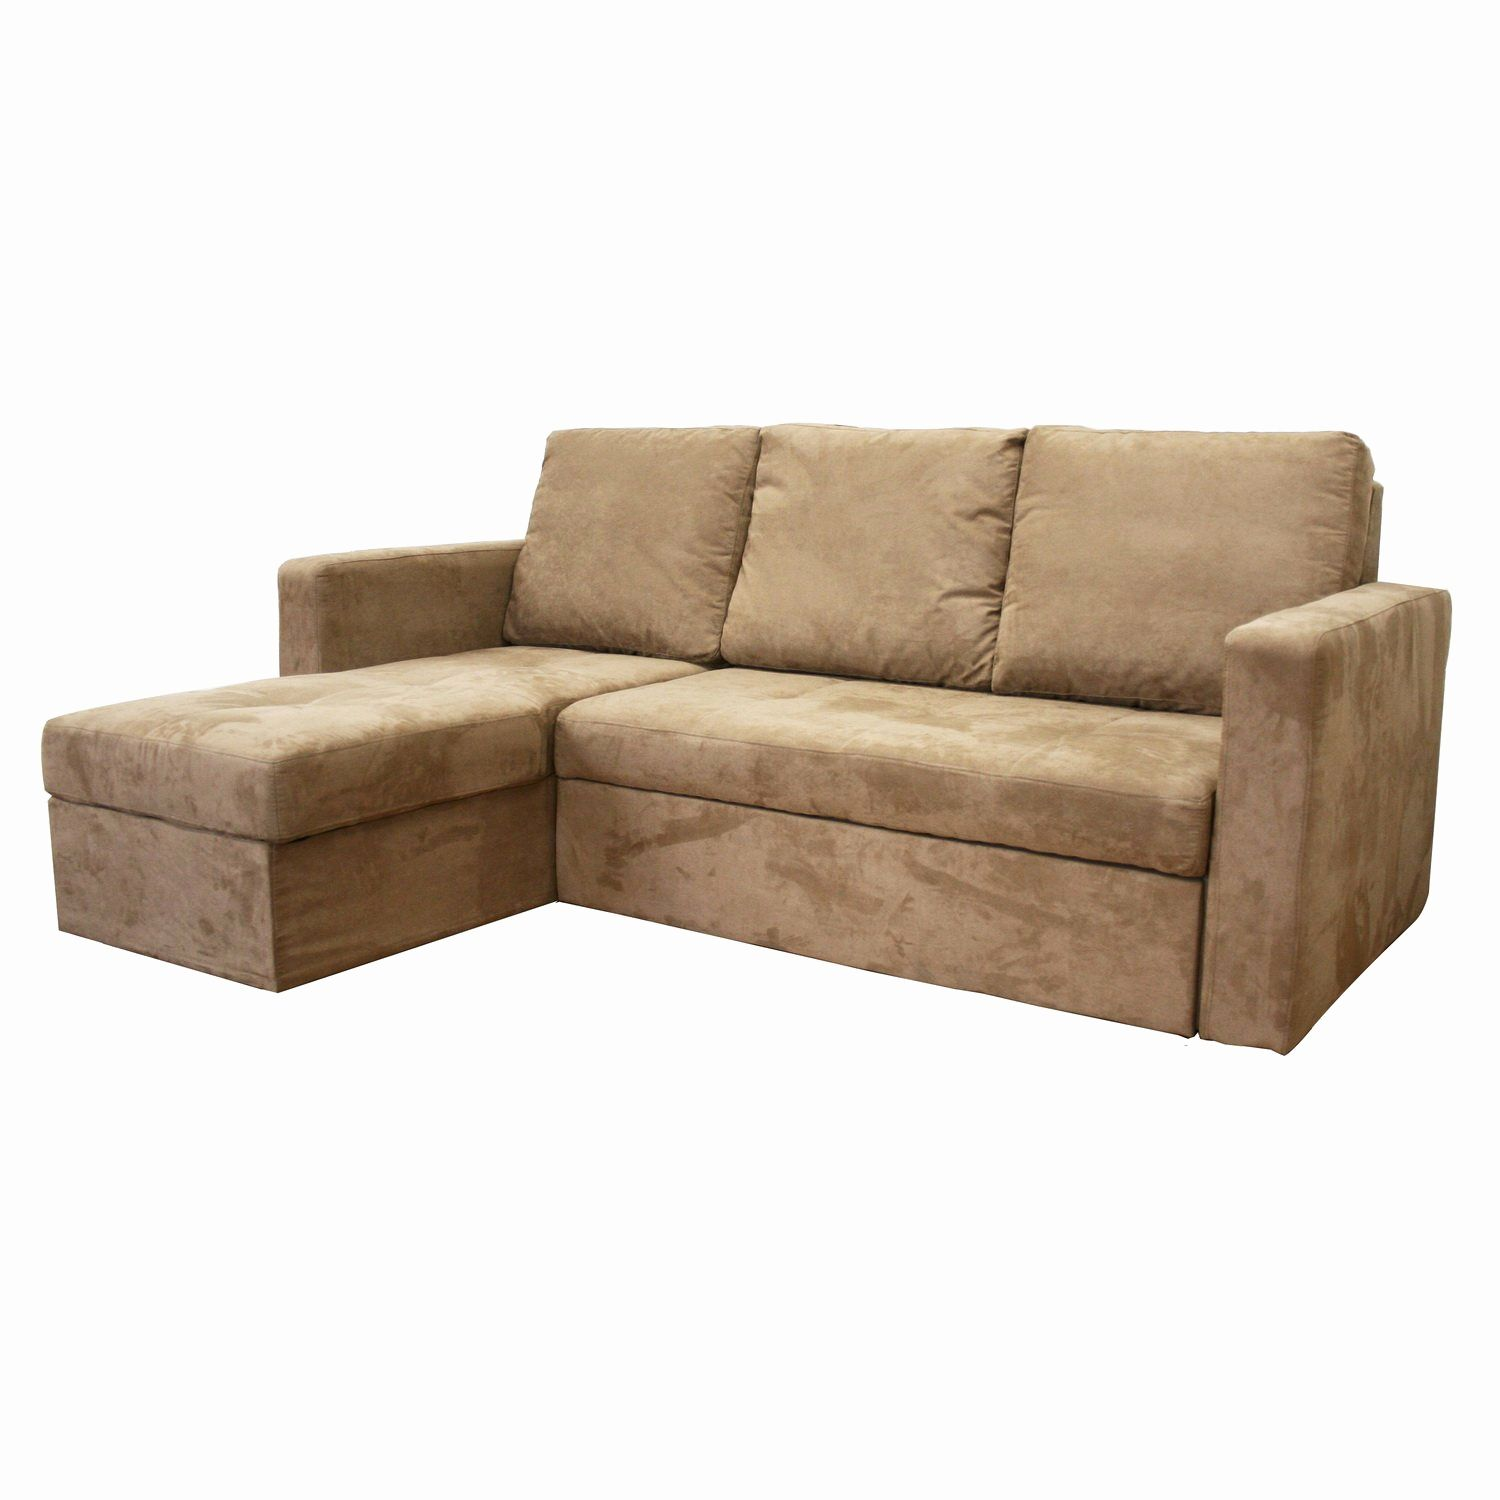 cleaning high couch home microfiber pin fresh definition sofas sofa decor amazing